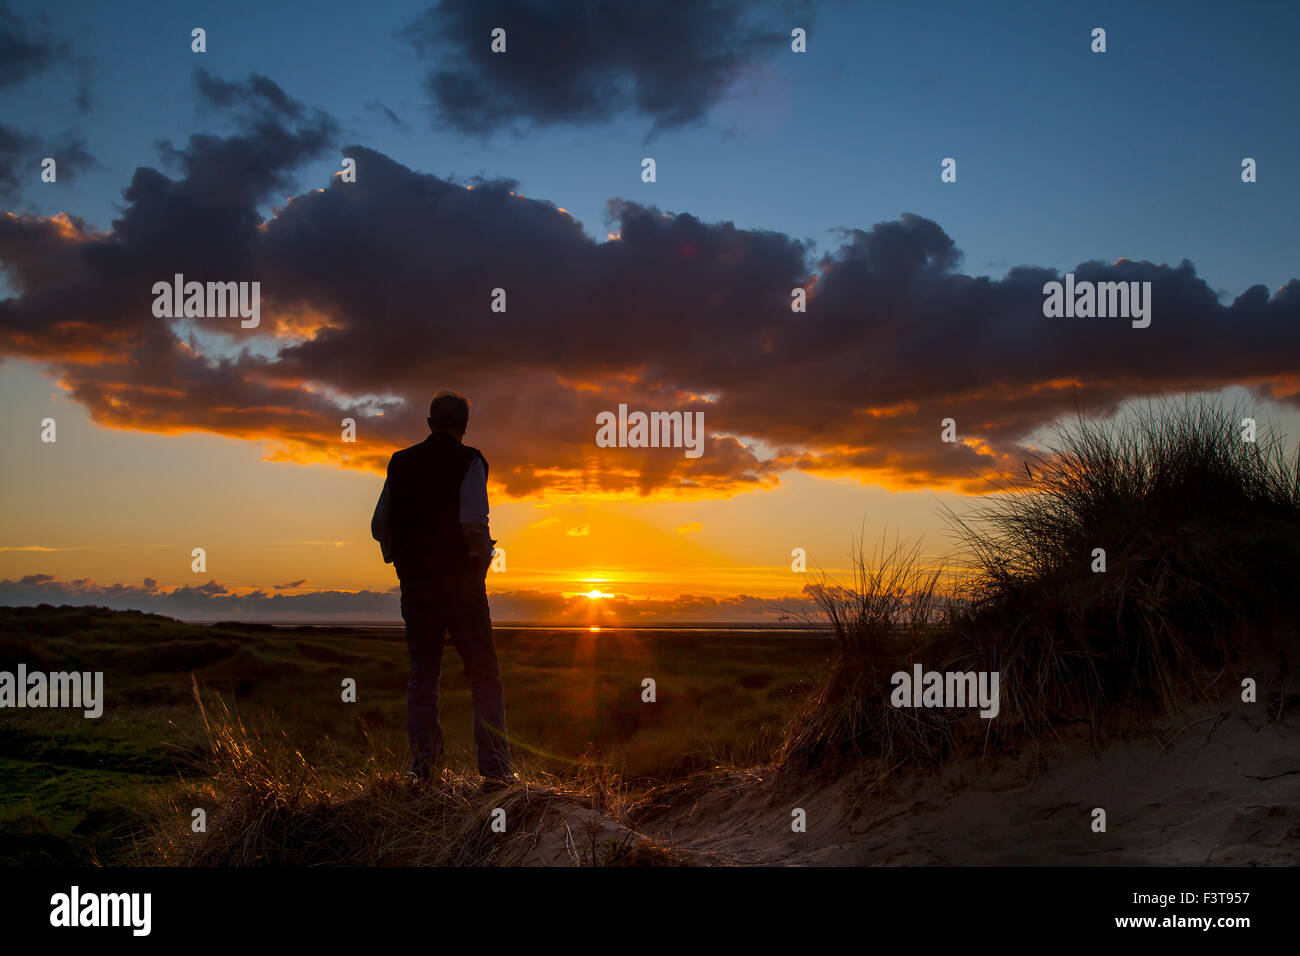 Southport, Merseyside, UK 12th October, 2015. Silhouette man. UK Weather. Colourful sunset over the Irish Sea and Stock Photo